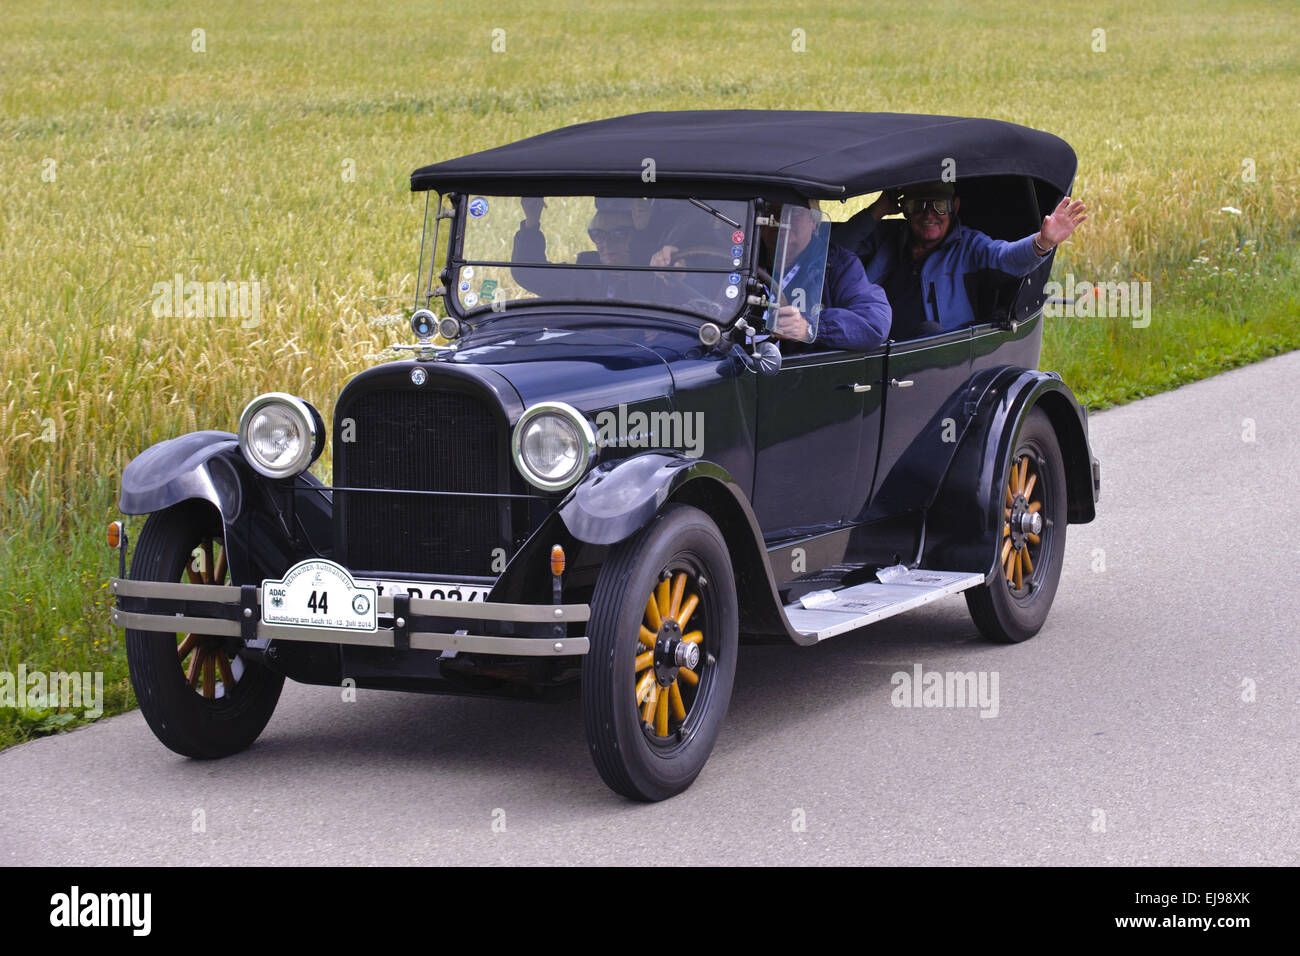 The Cost Of Cars In 1924 - Veteran car dodge built at year 1924 stock image